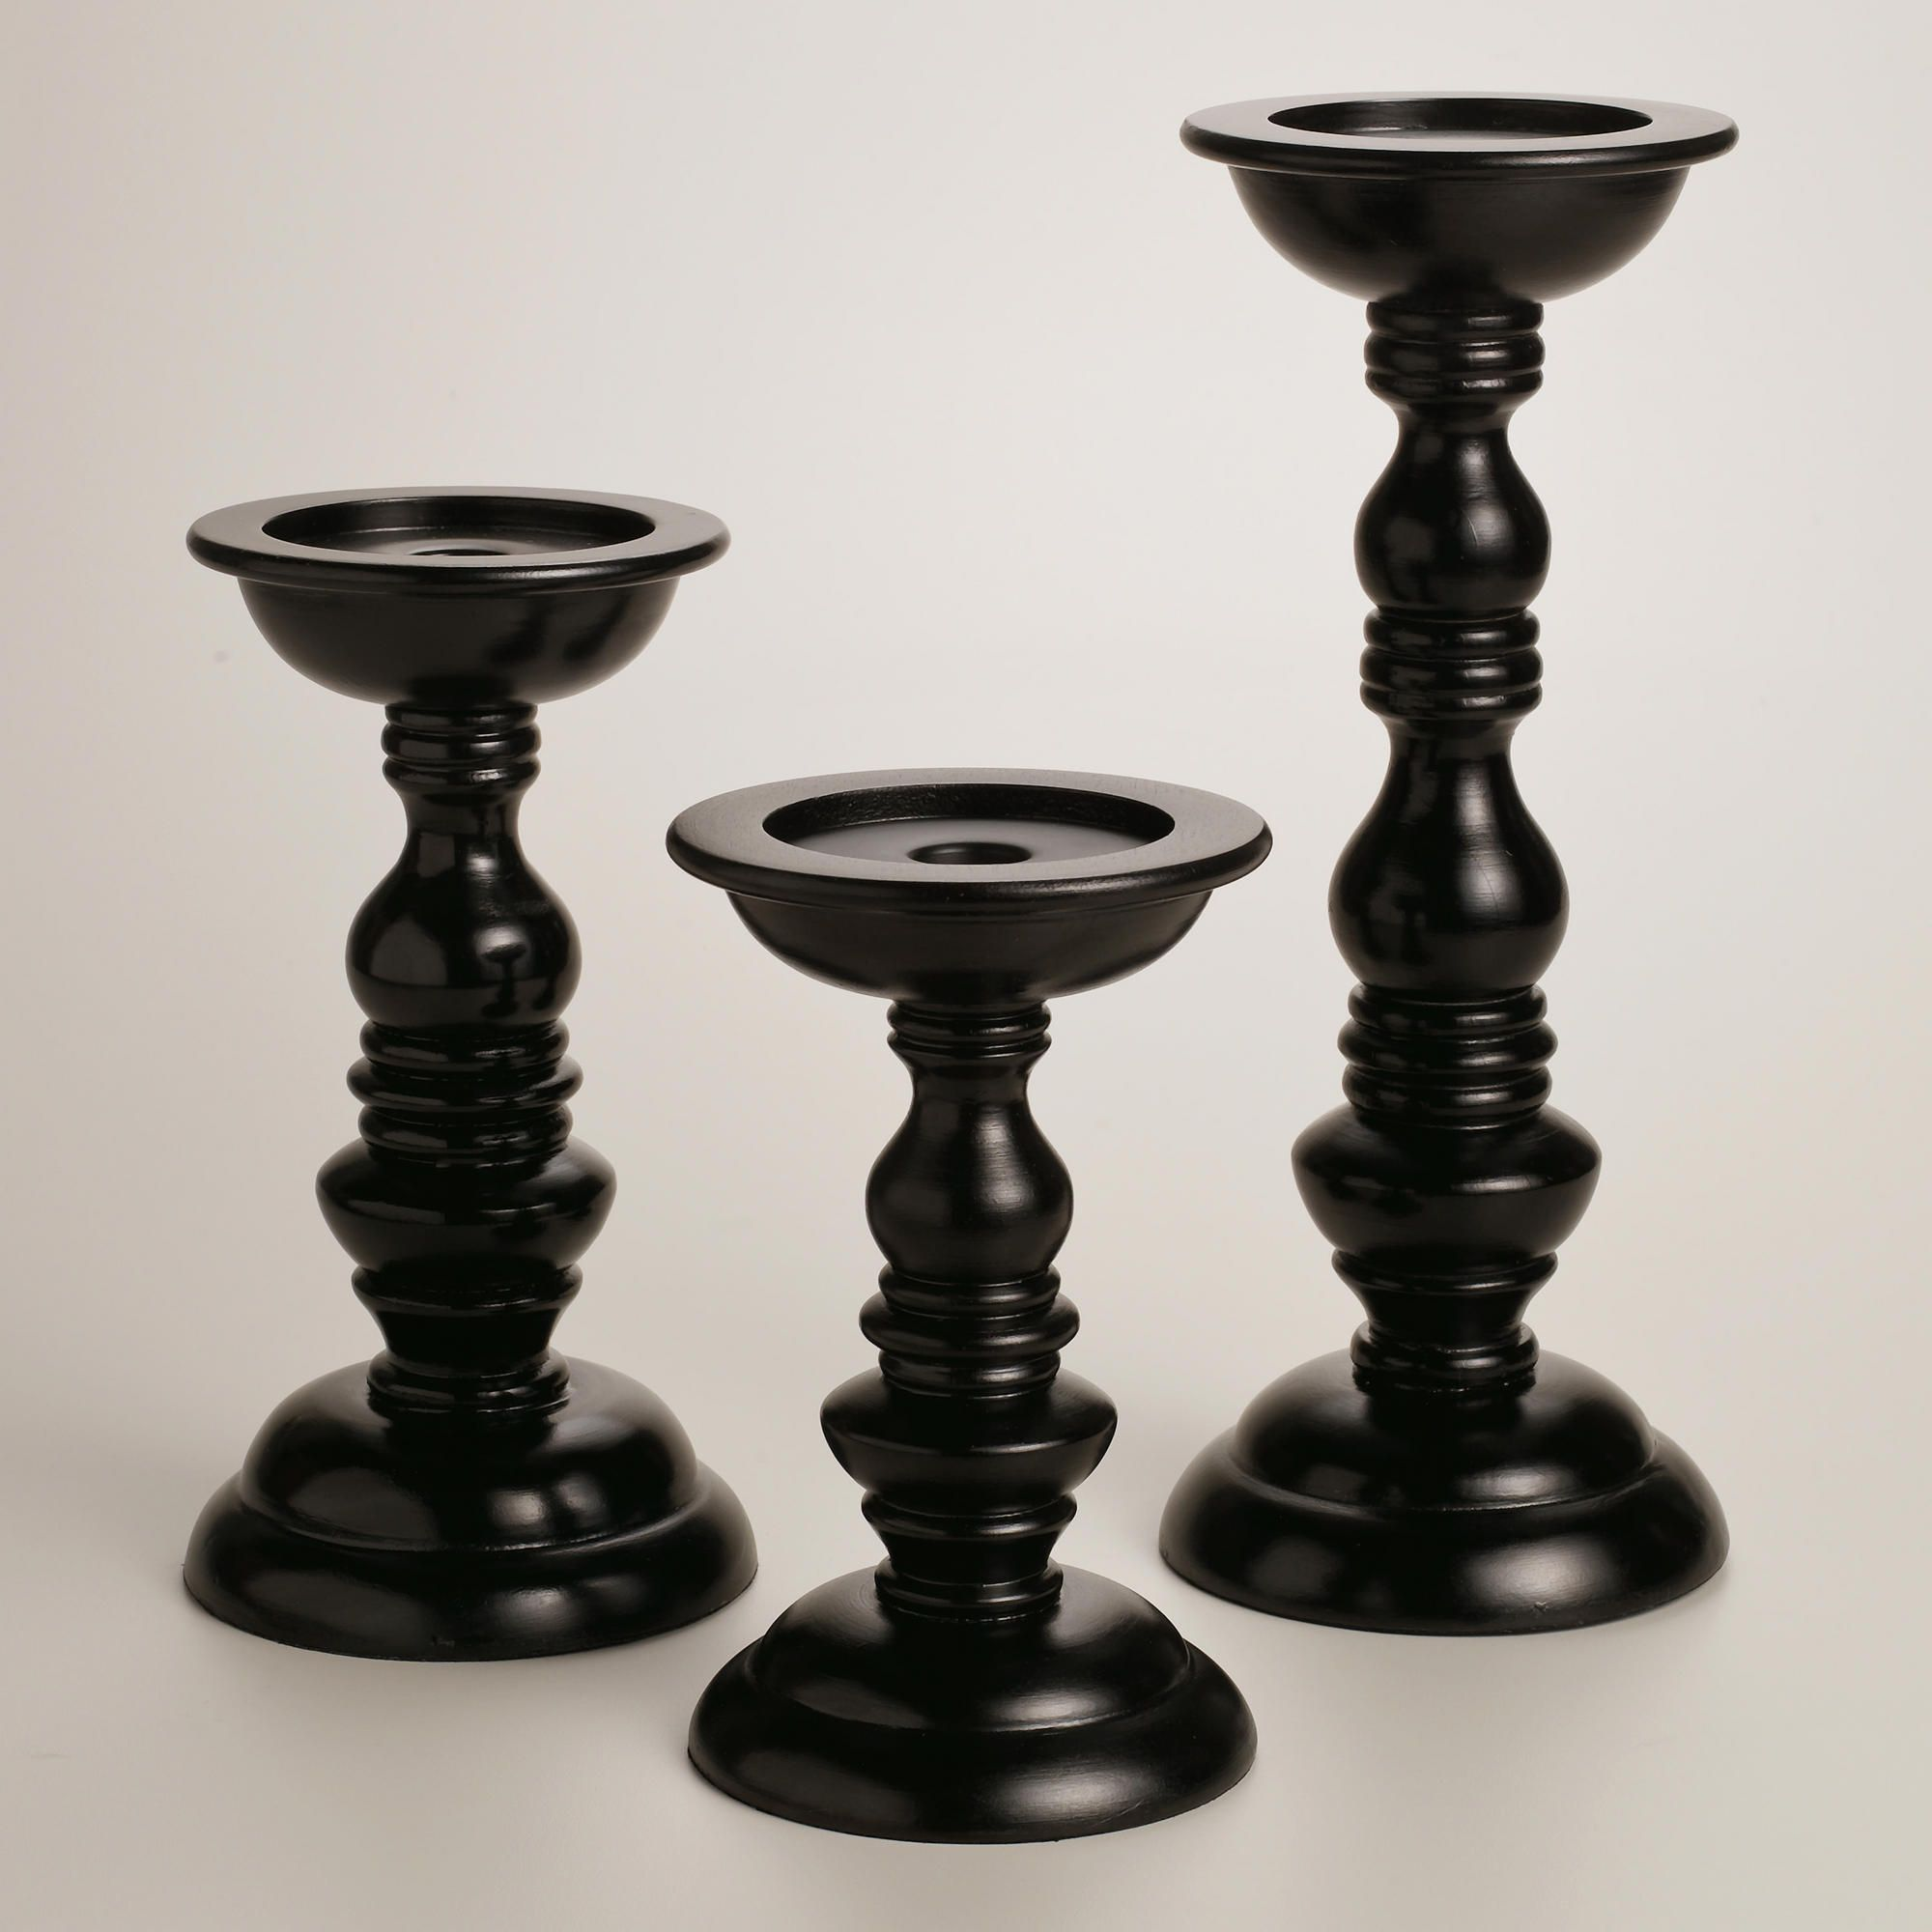 Harrison Black Pillar Candle Holders World Market From Cost Plus Saved To Epic Wishlist Cute Imobsessedwithblack Inlove